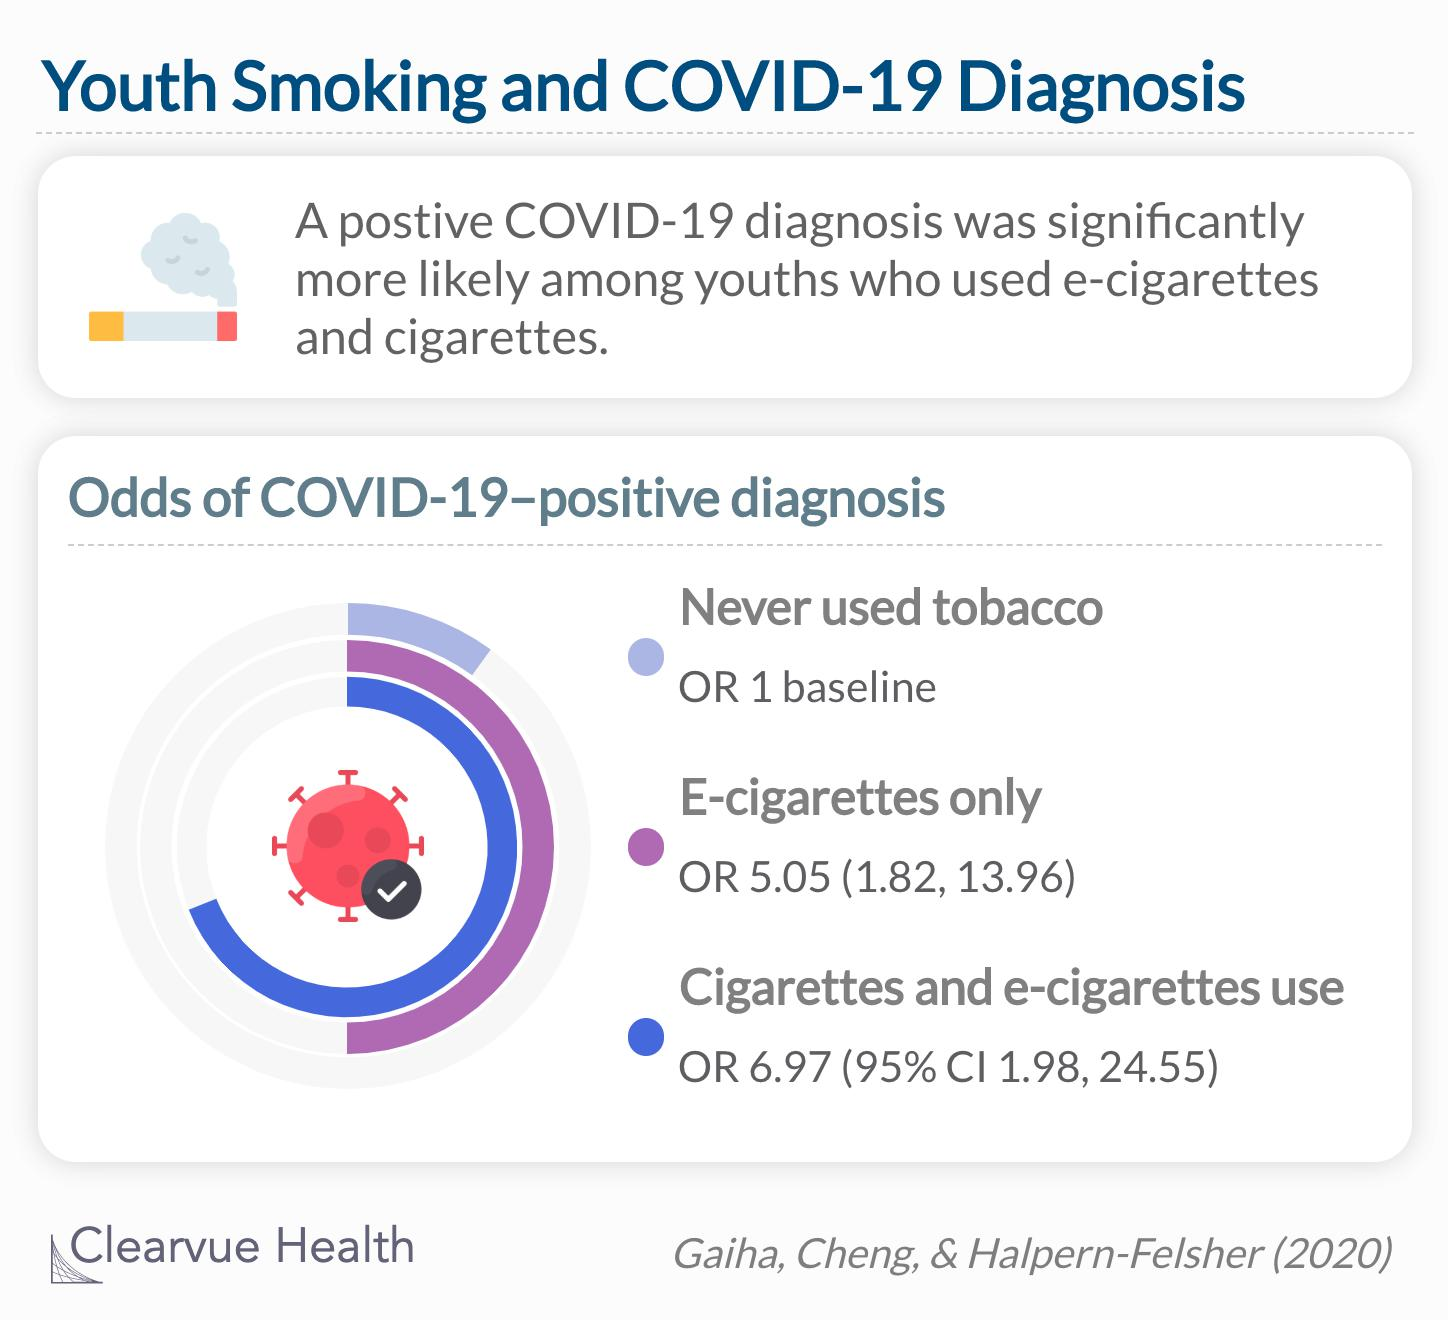 COVID-19 is associated with youth use of e-cigarettes only and dual use of e-cigarettes and cigarettes, suggesting the need for screening and education.